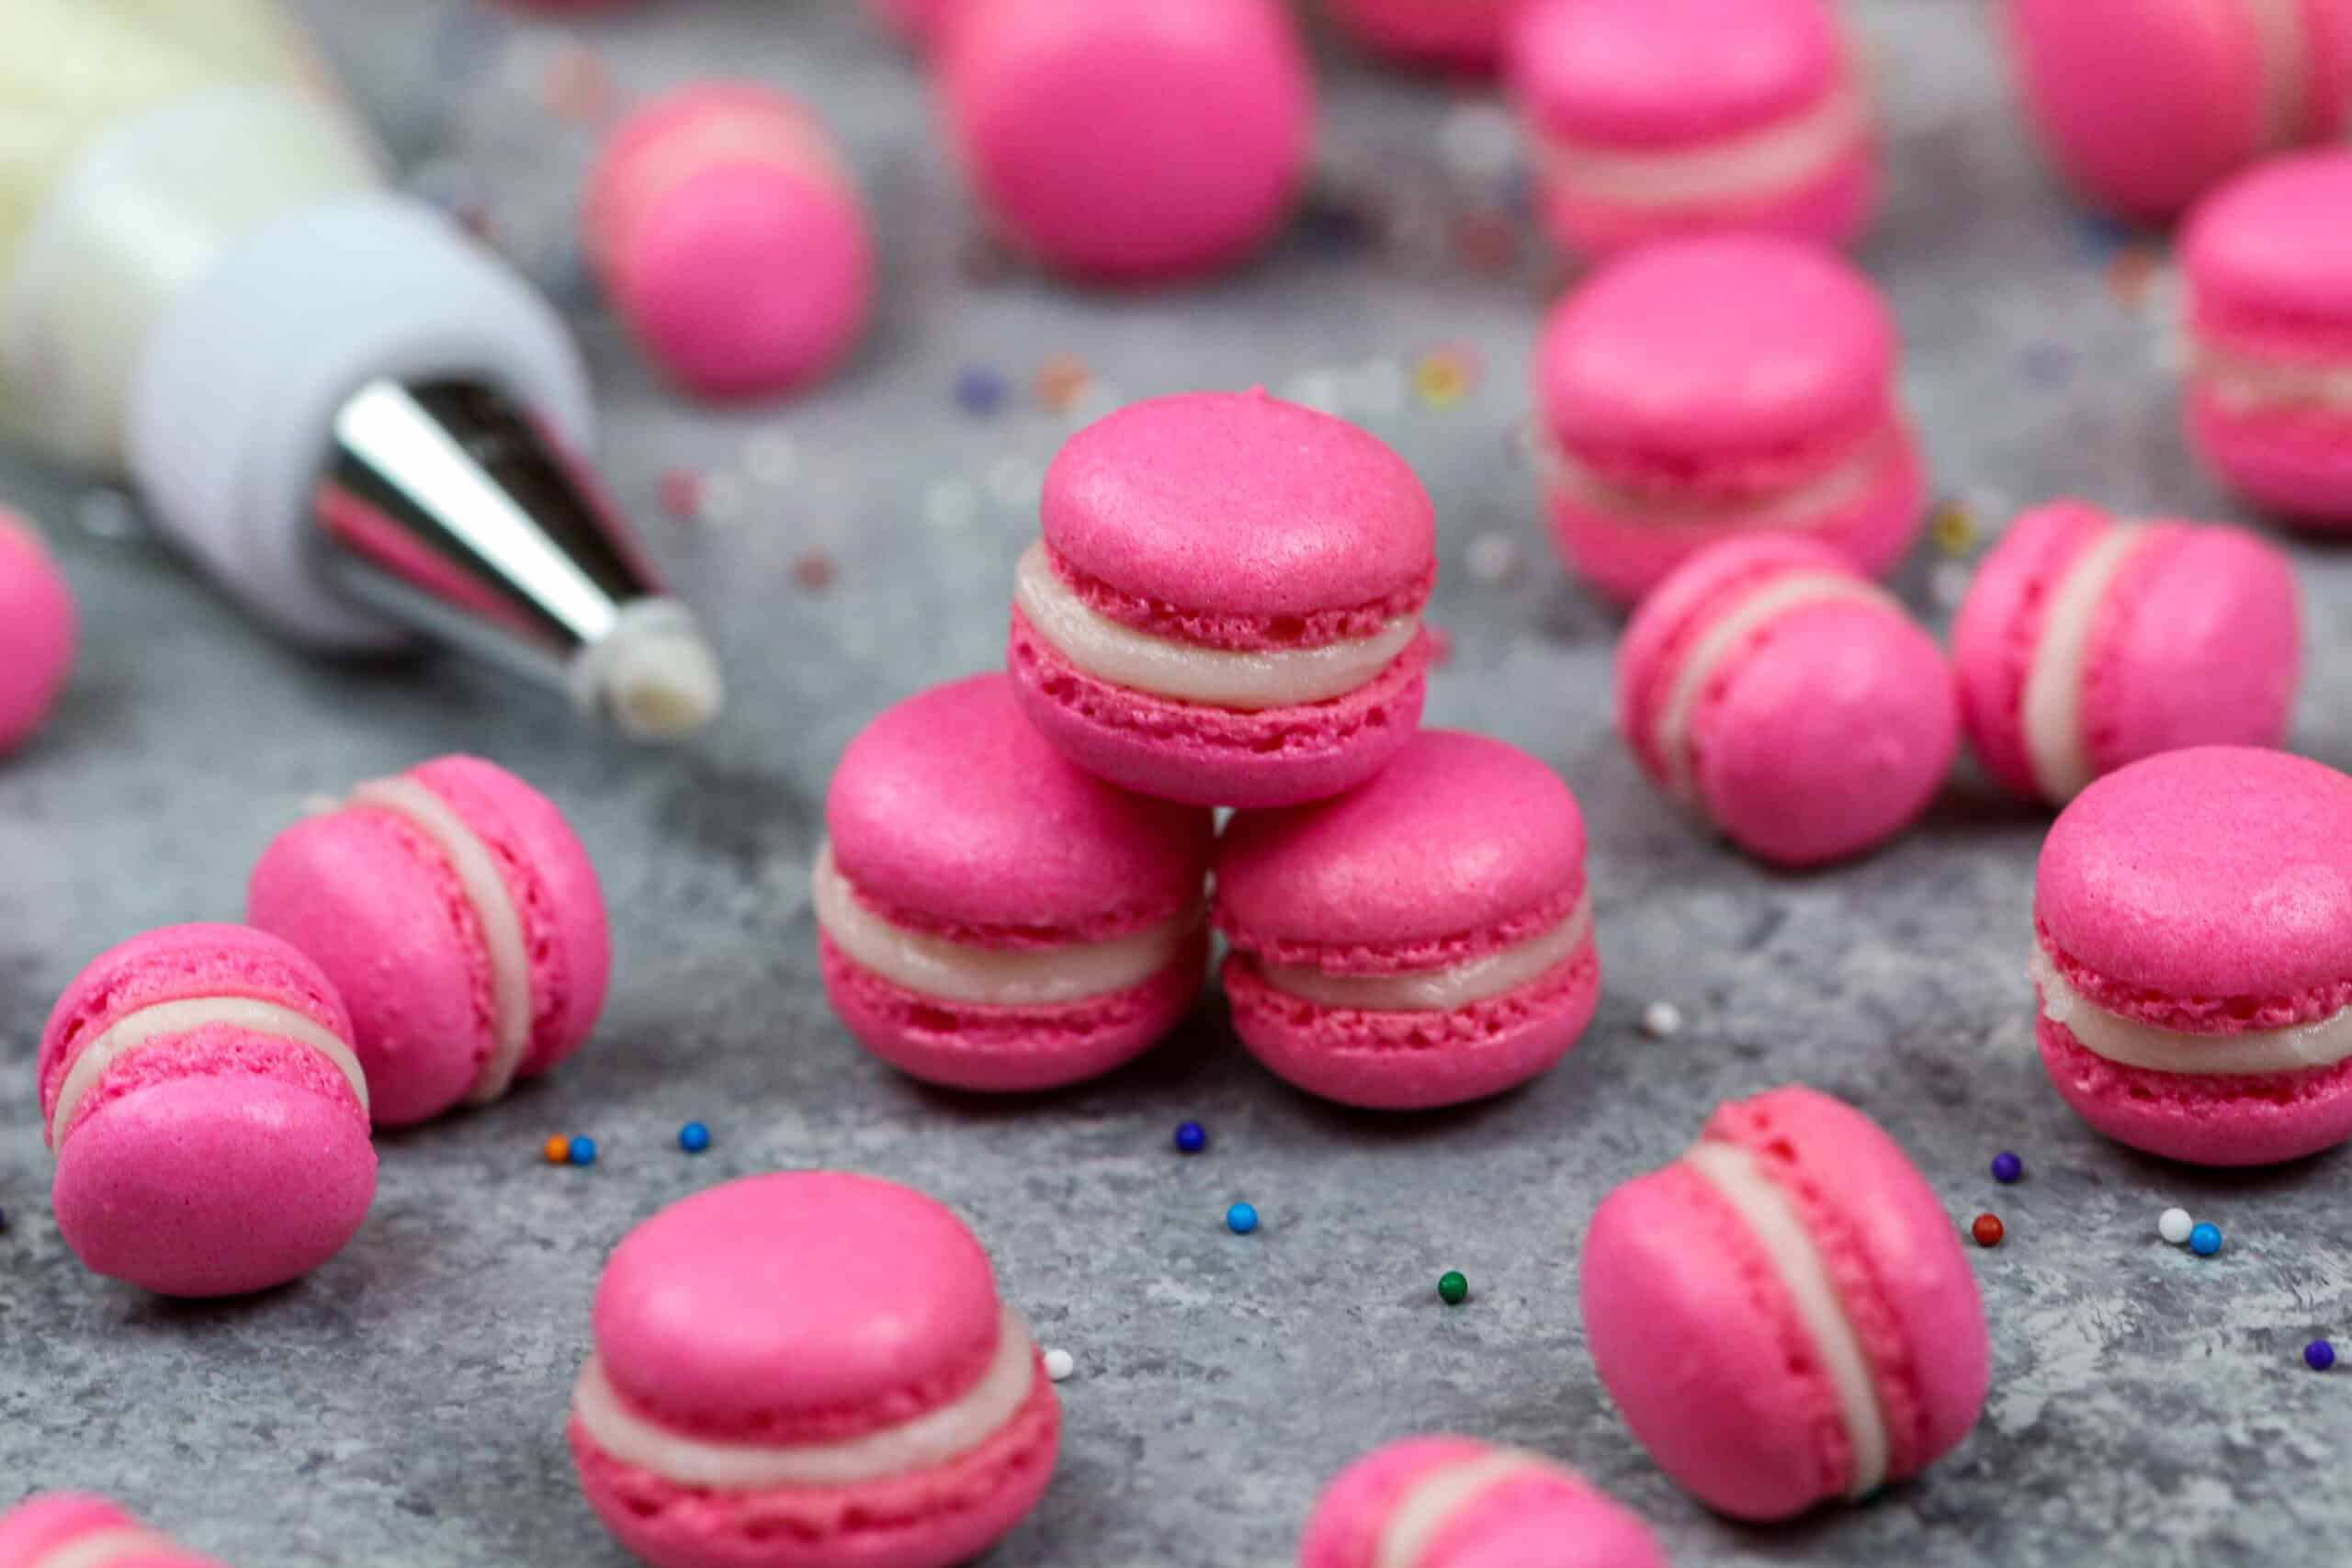 image of mini macarons colored pink with gel food coloring and filled with american buttercream